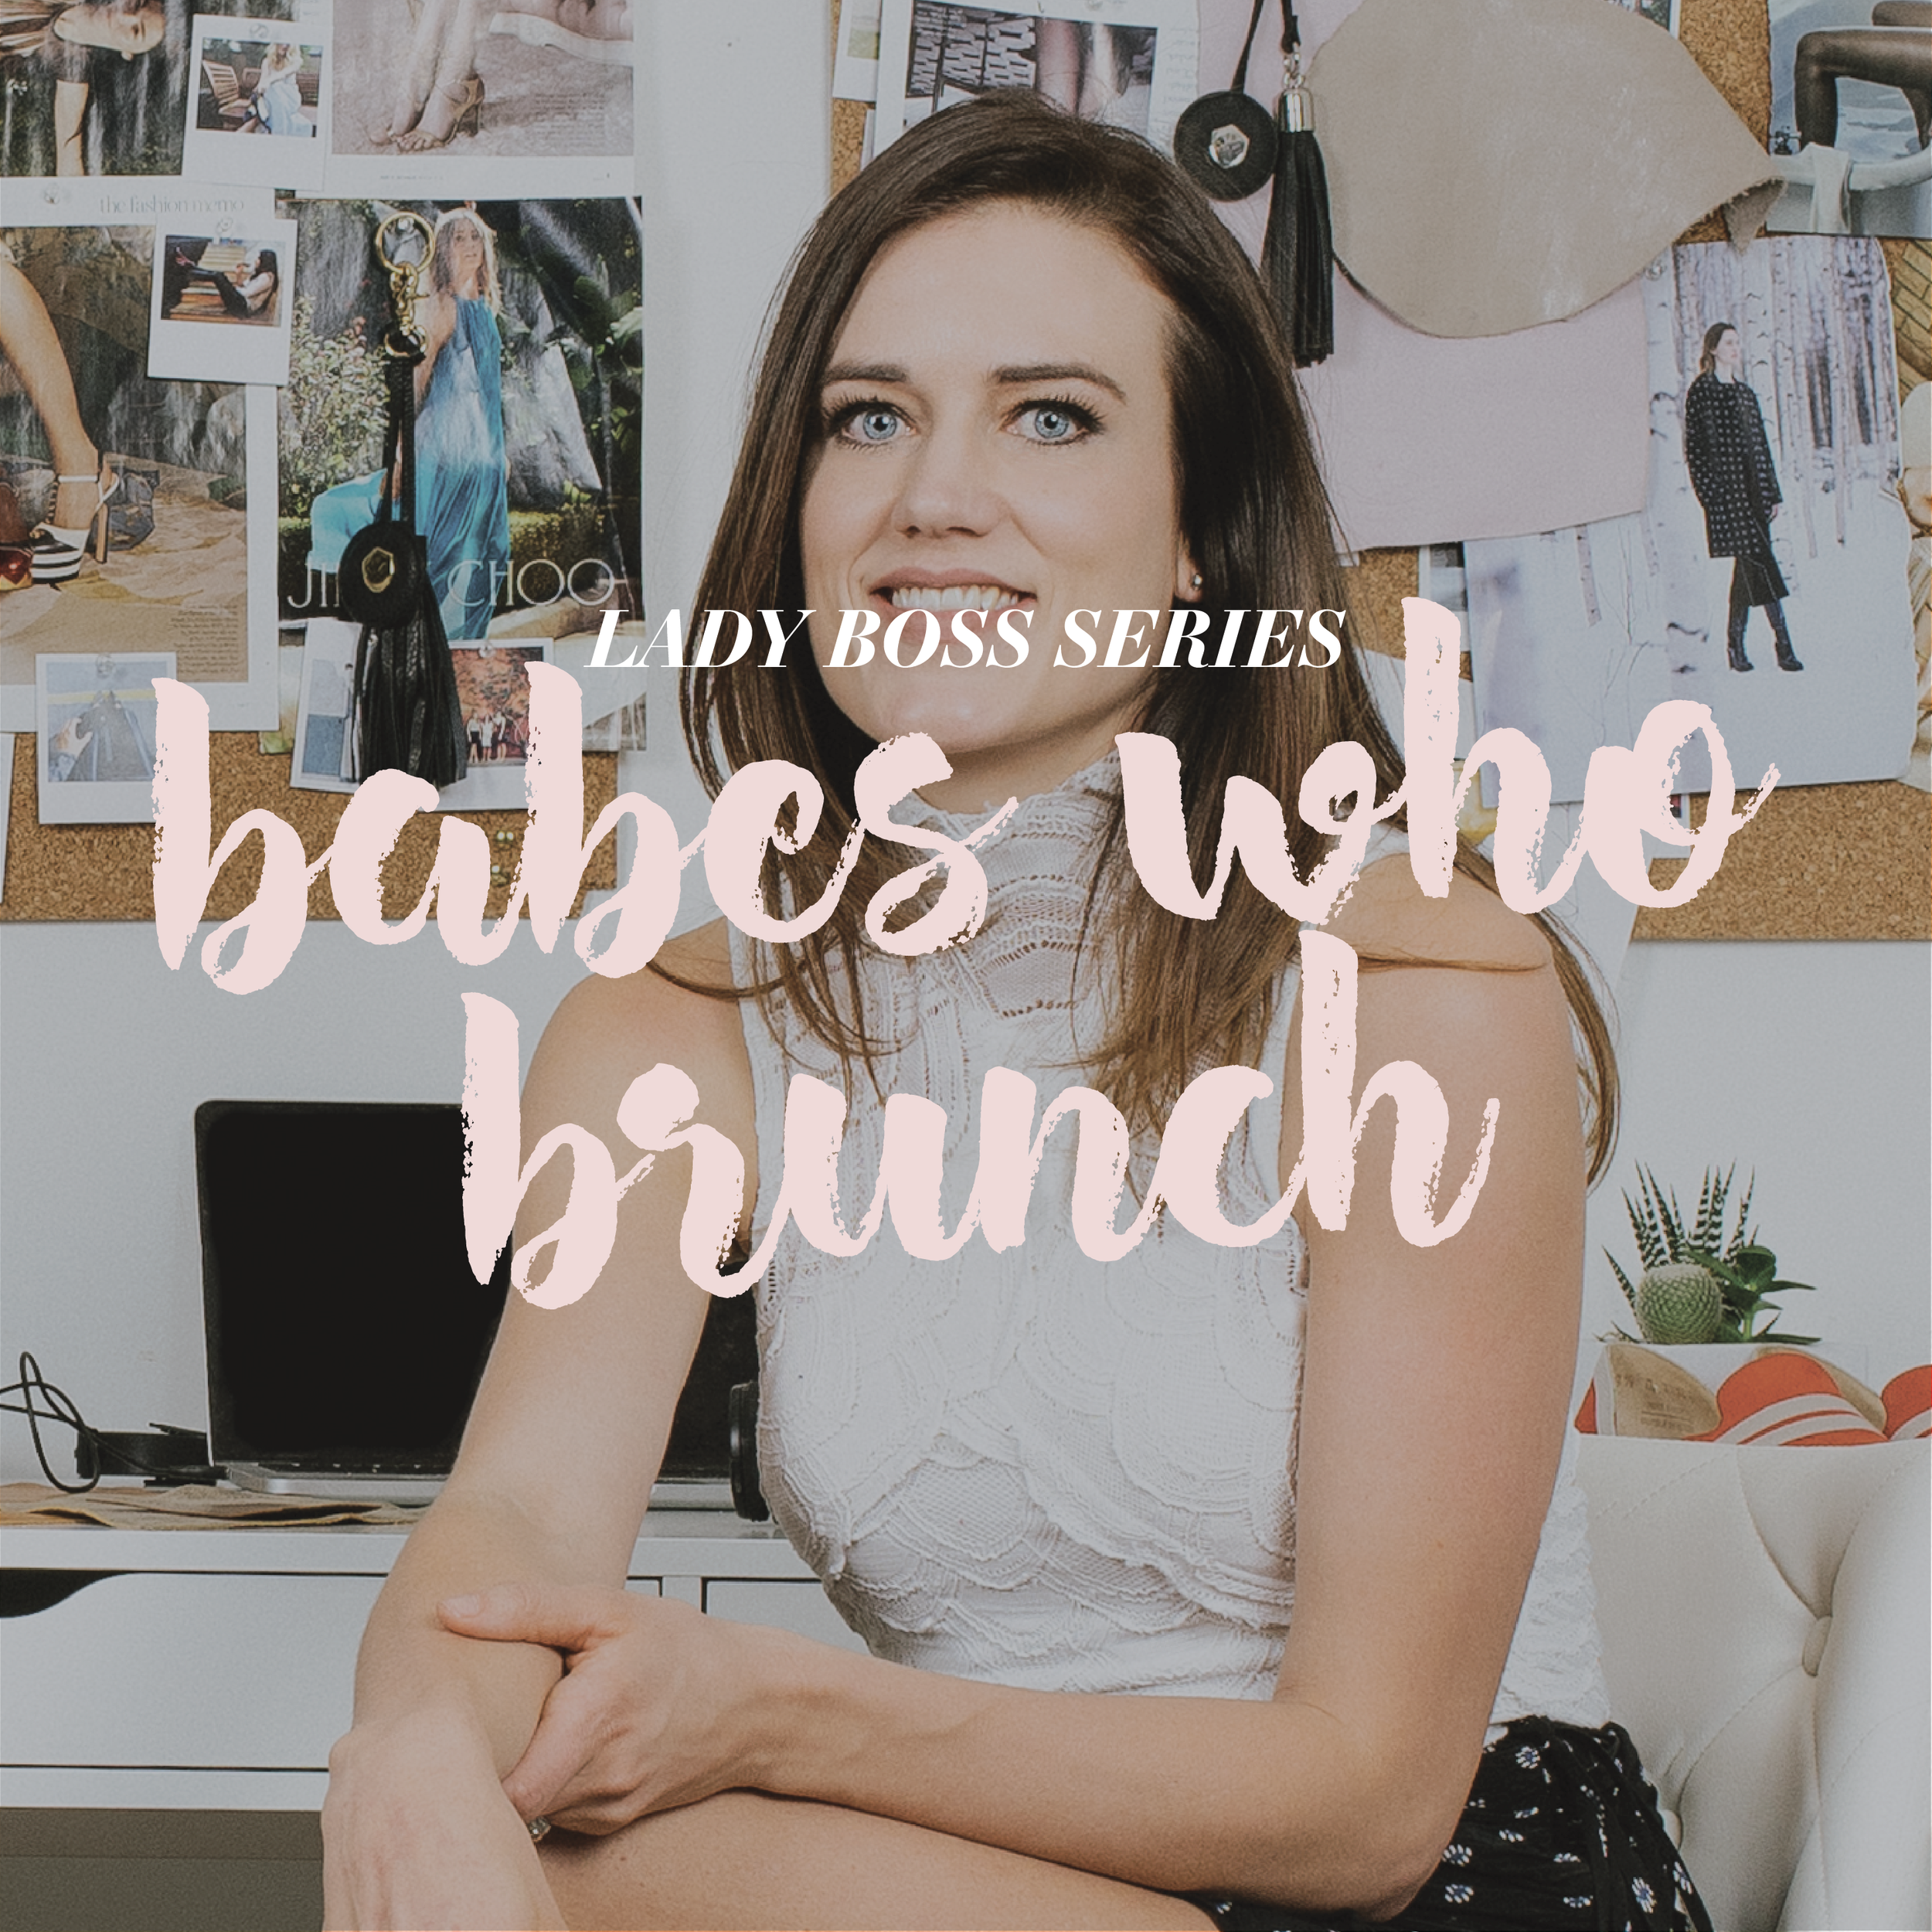 BABESWHOBRUNCH_JUSTINE_JAN20-01.png